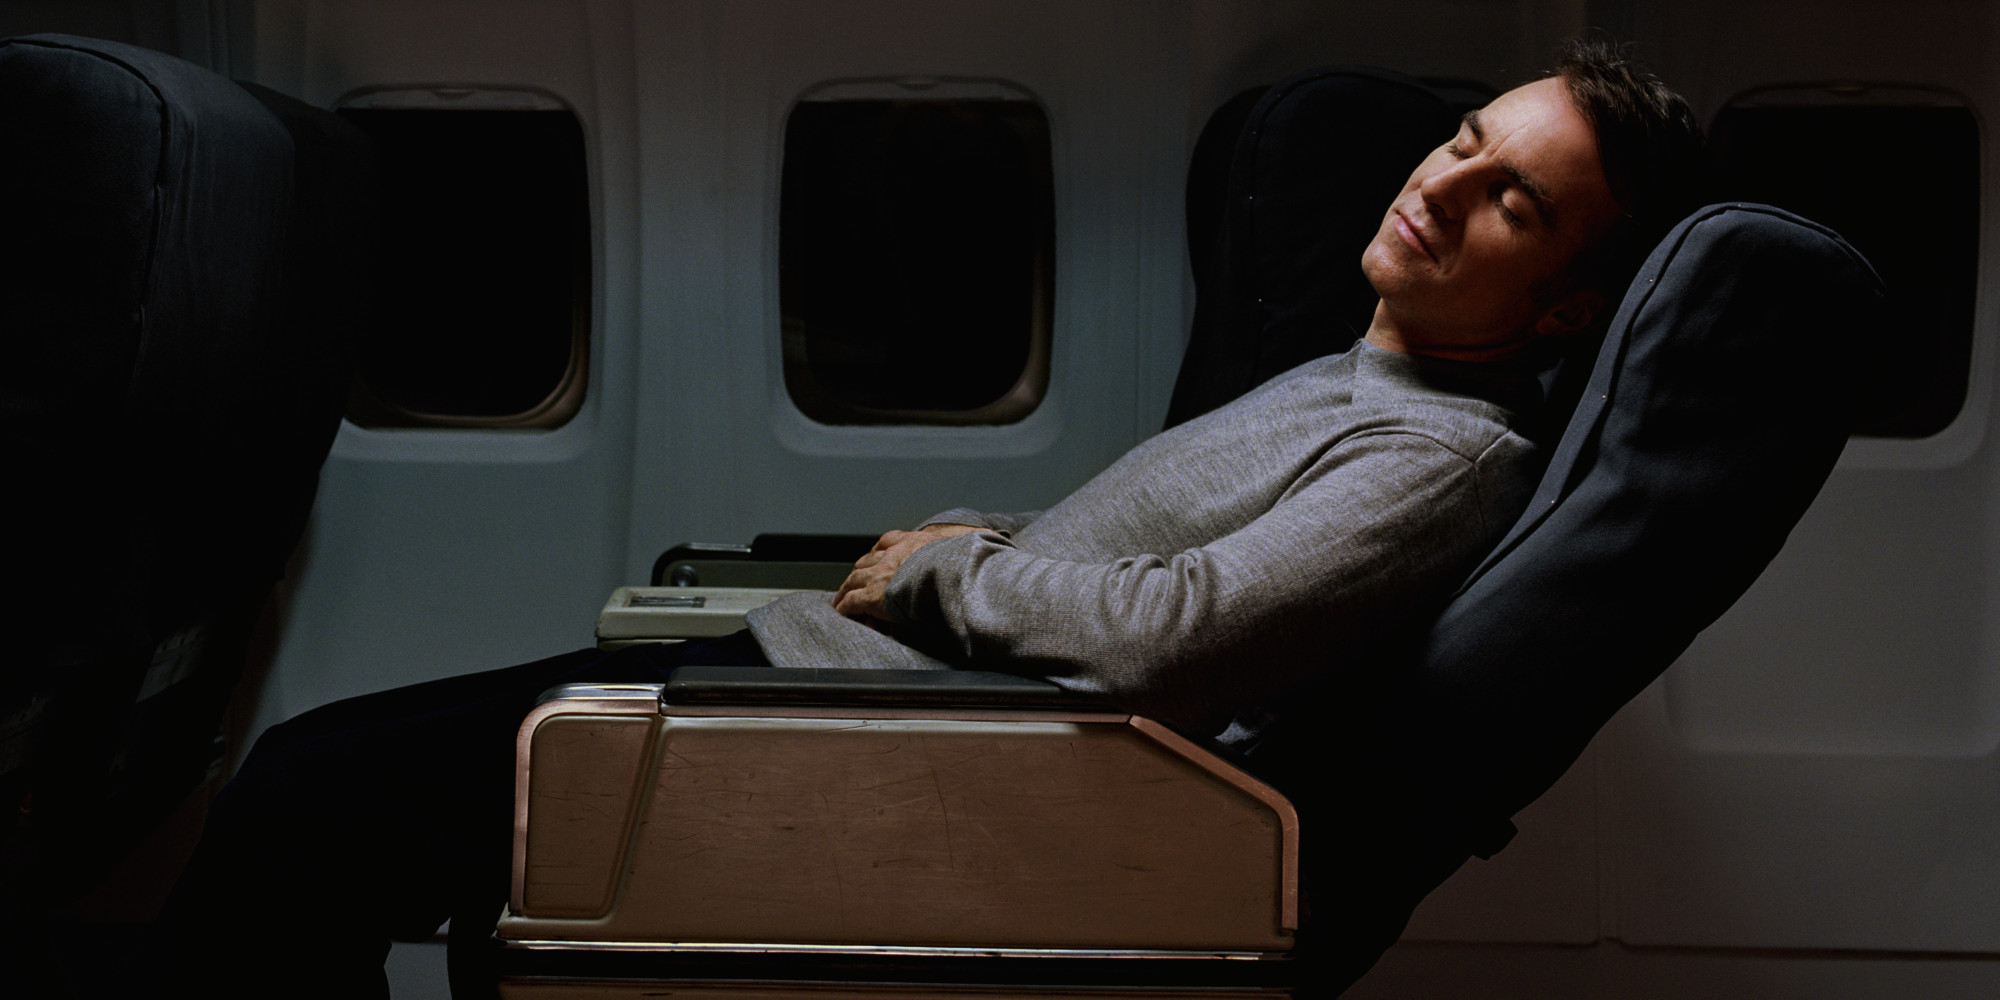 10 Ways to Get Sleep on the Plane Without Much Effort